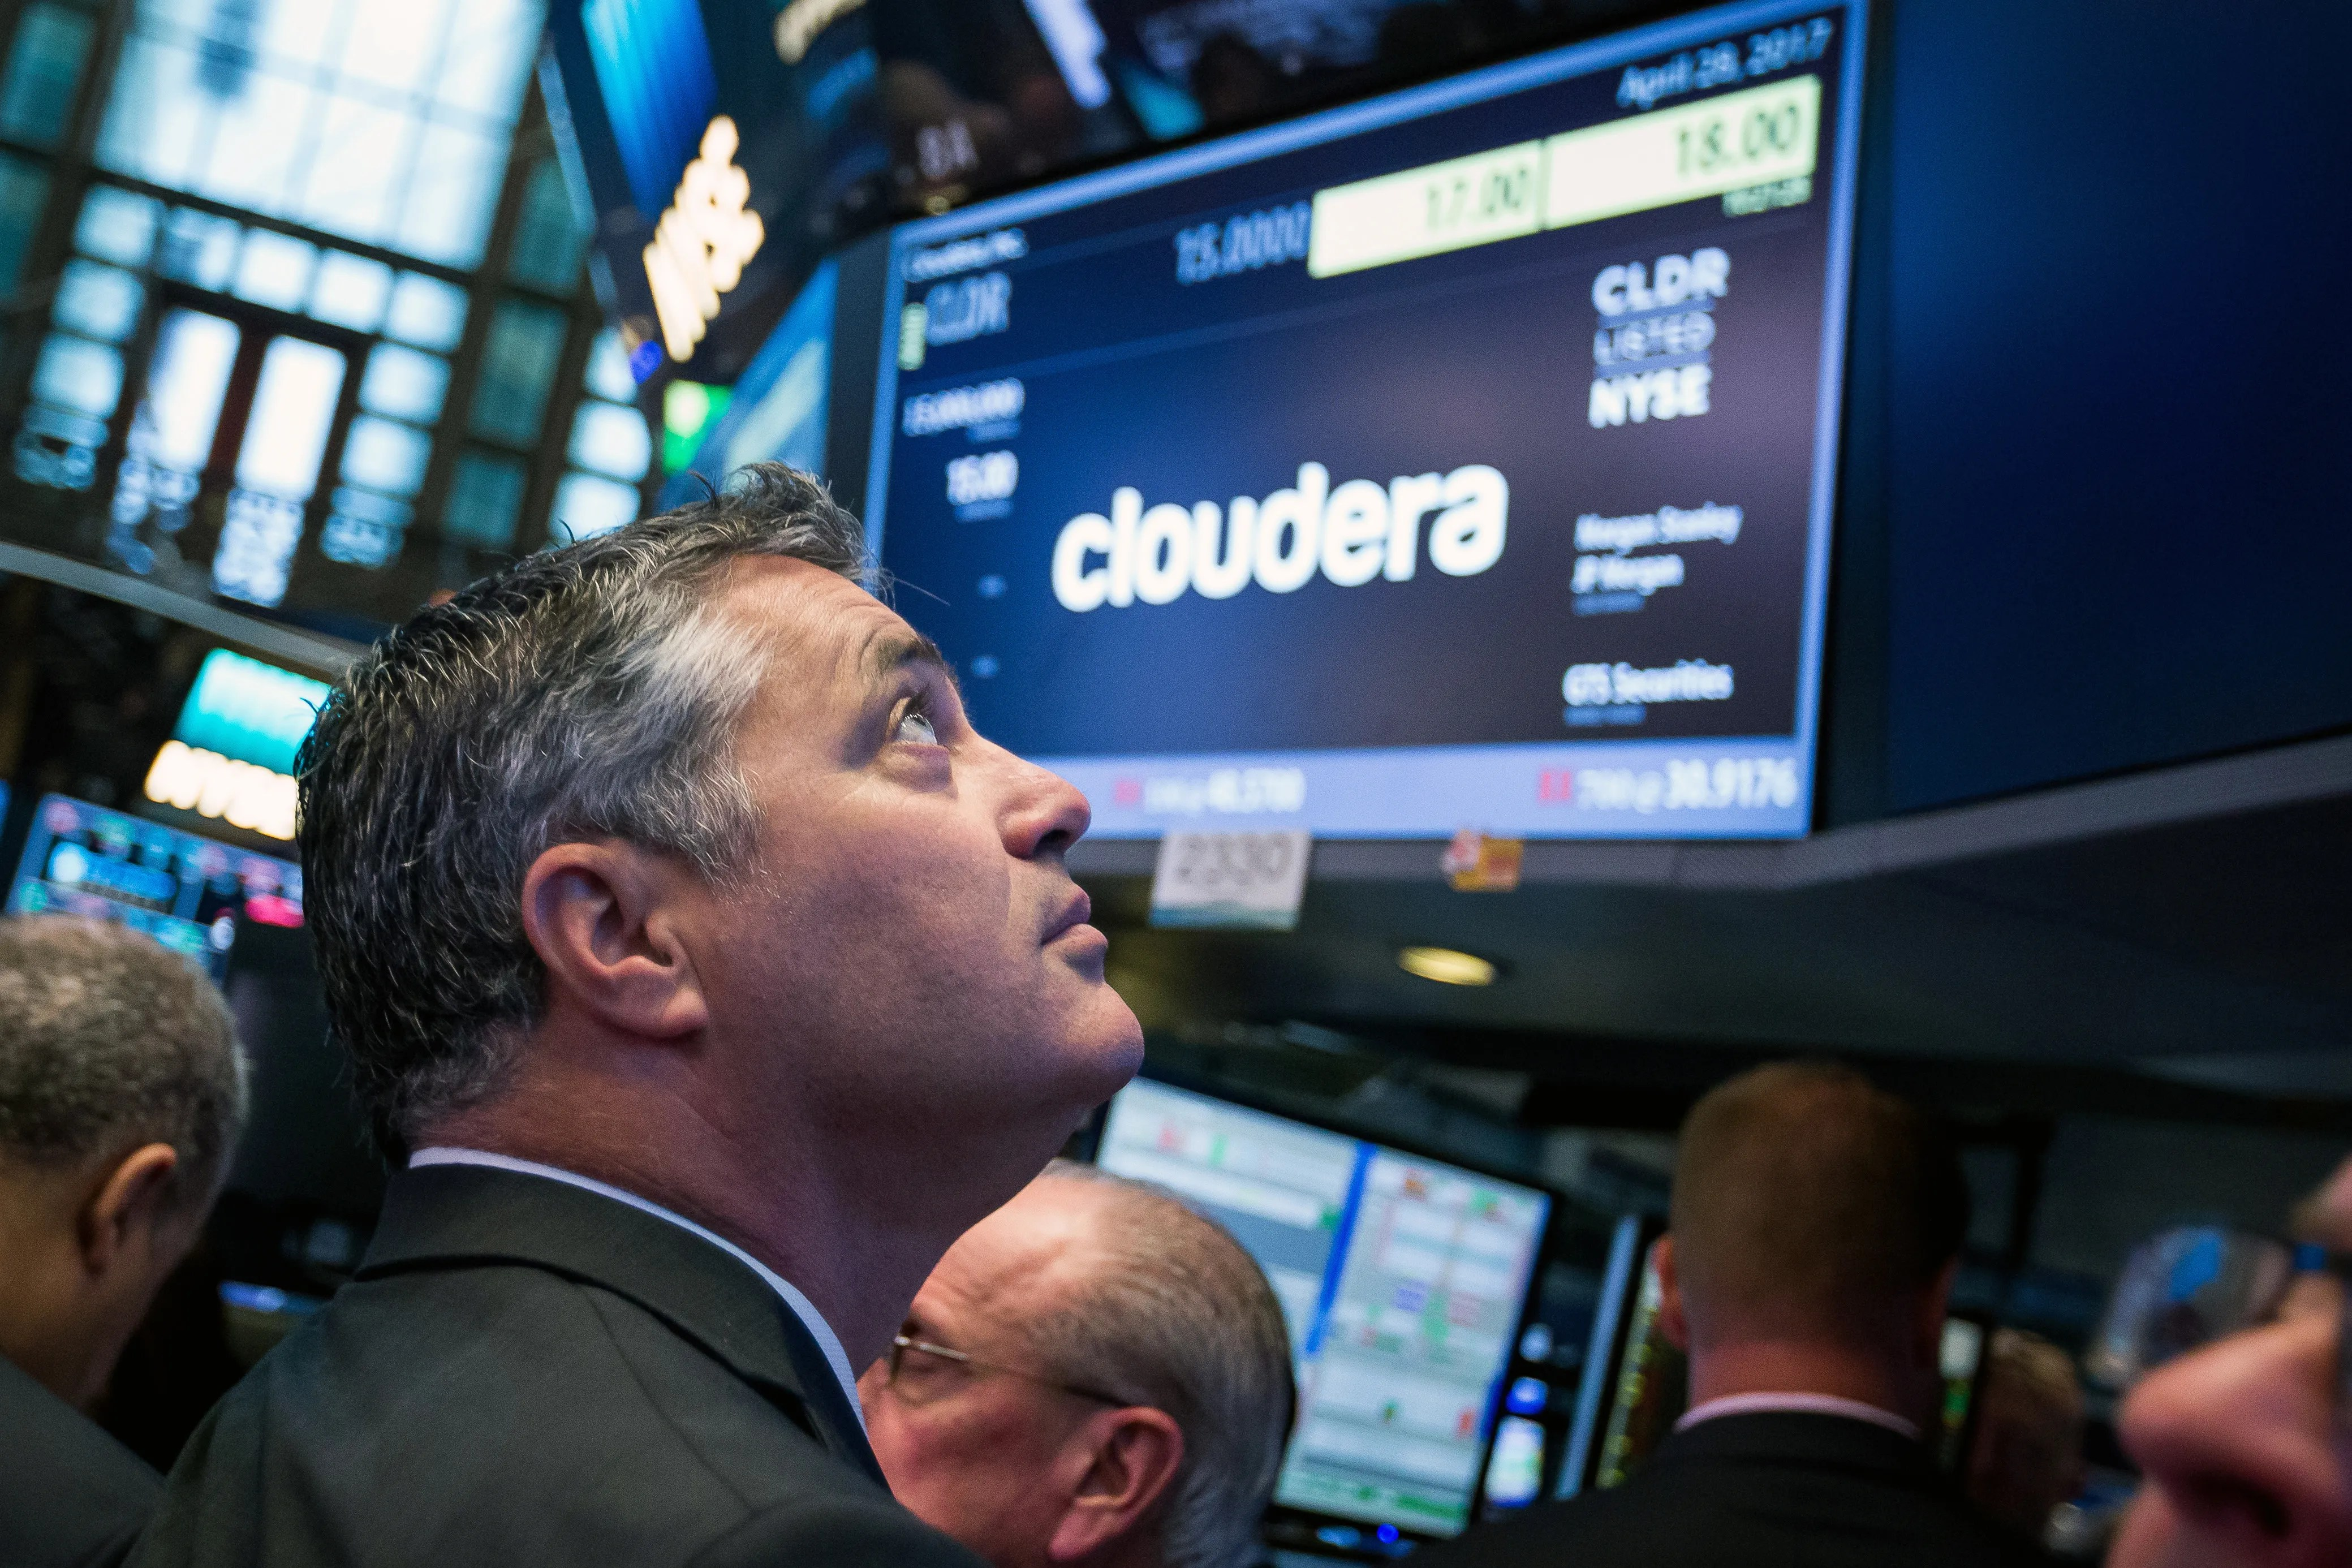 Tom Reilly, CEO of Cloudera, on the floor of the New York Stock Exchange during the company's initial public offering on April 28. (Michael Nagle/Bloomberg)